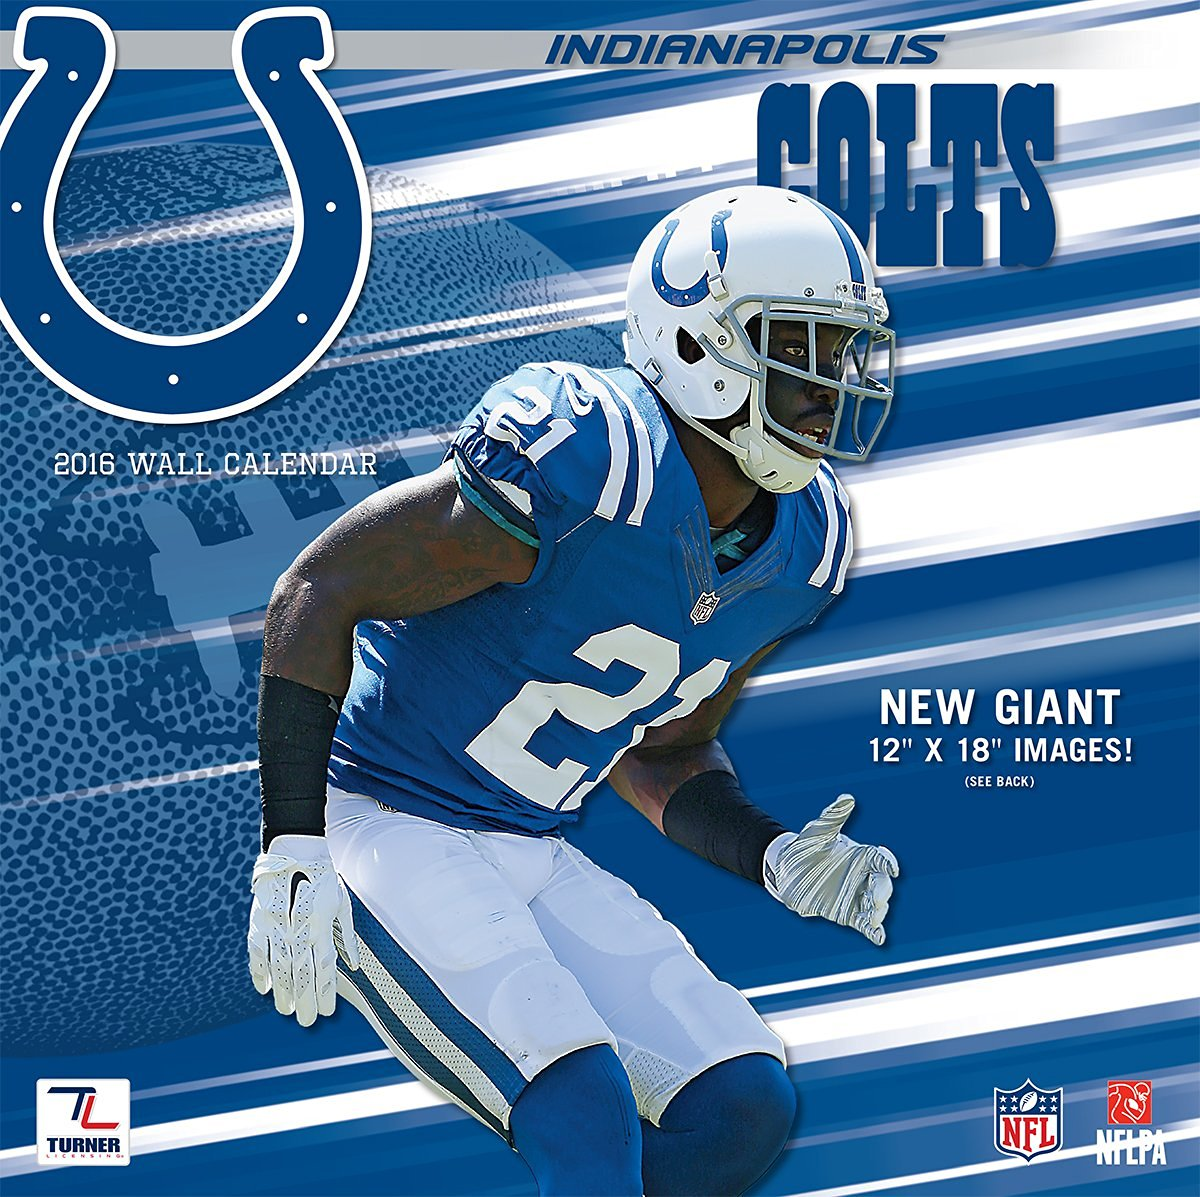 "Turner Indianapolis Colts 2016 Team Wall Calendar, September 2015 - December 2016, 12 x 12"" (8011912)"